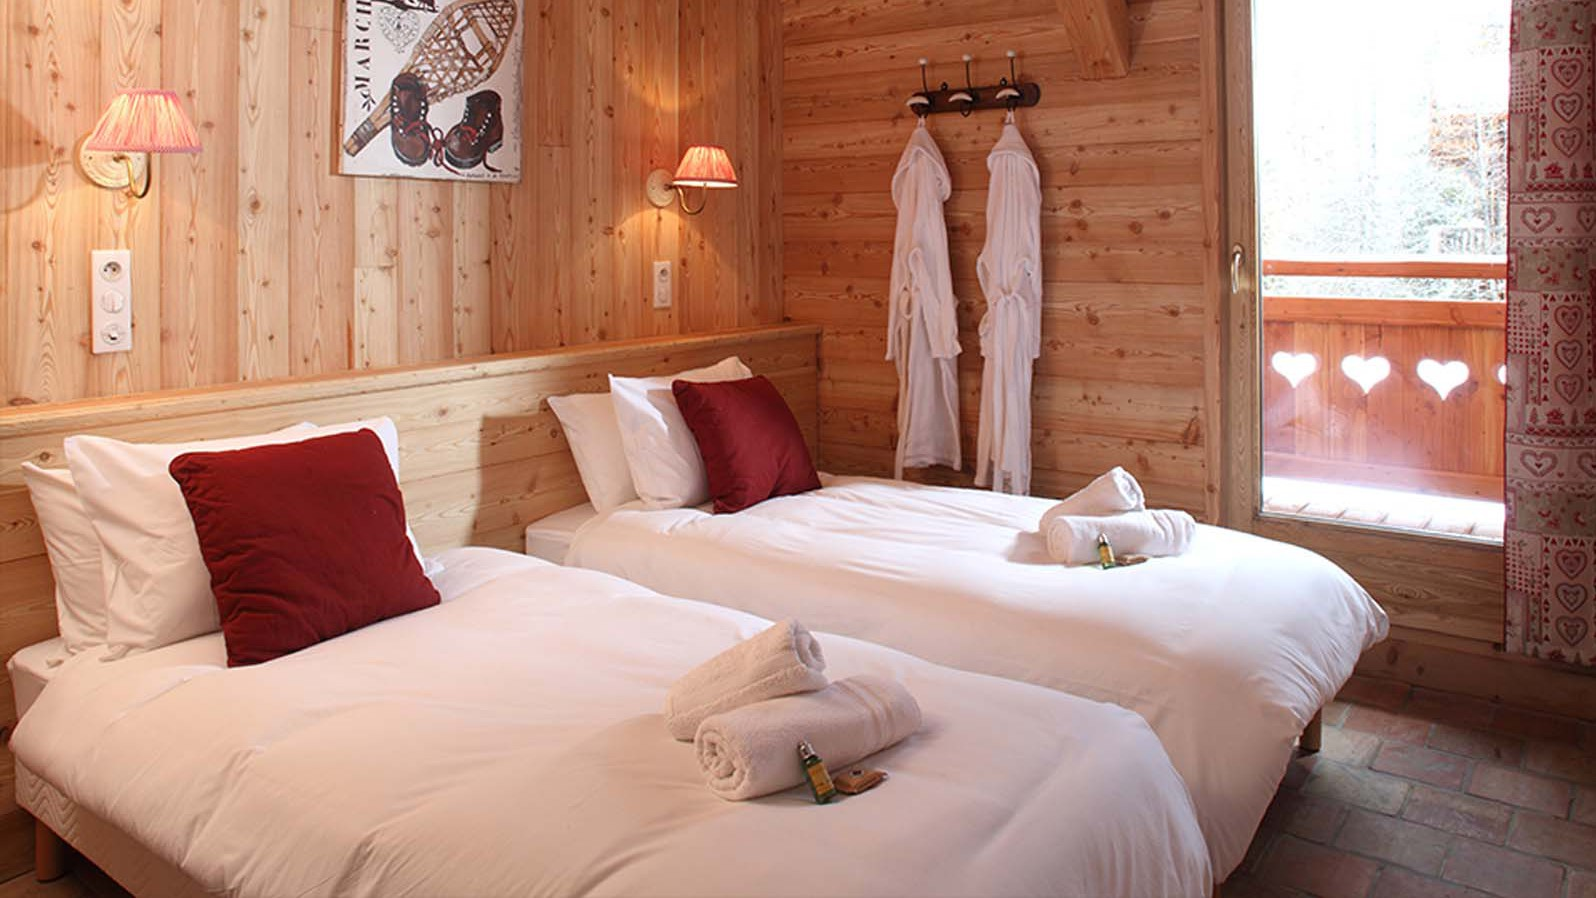 Chalet Klosters bedroom